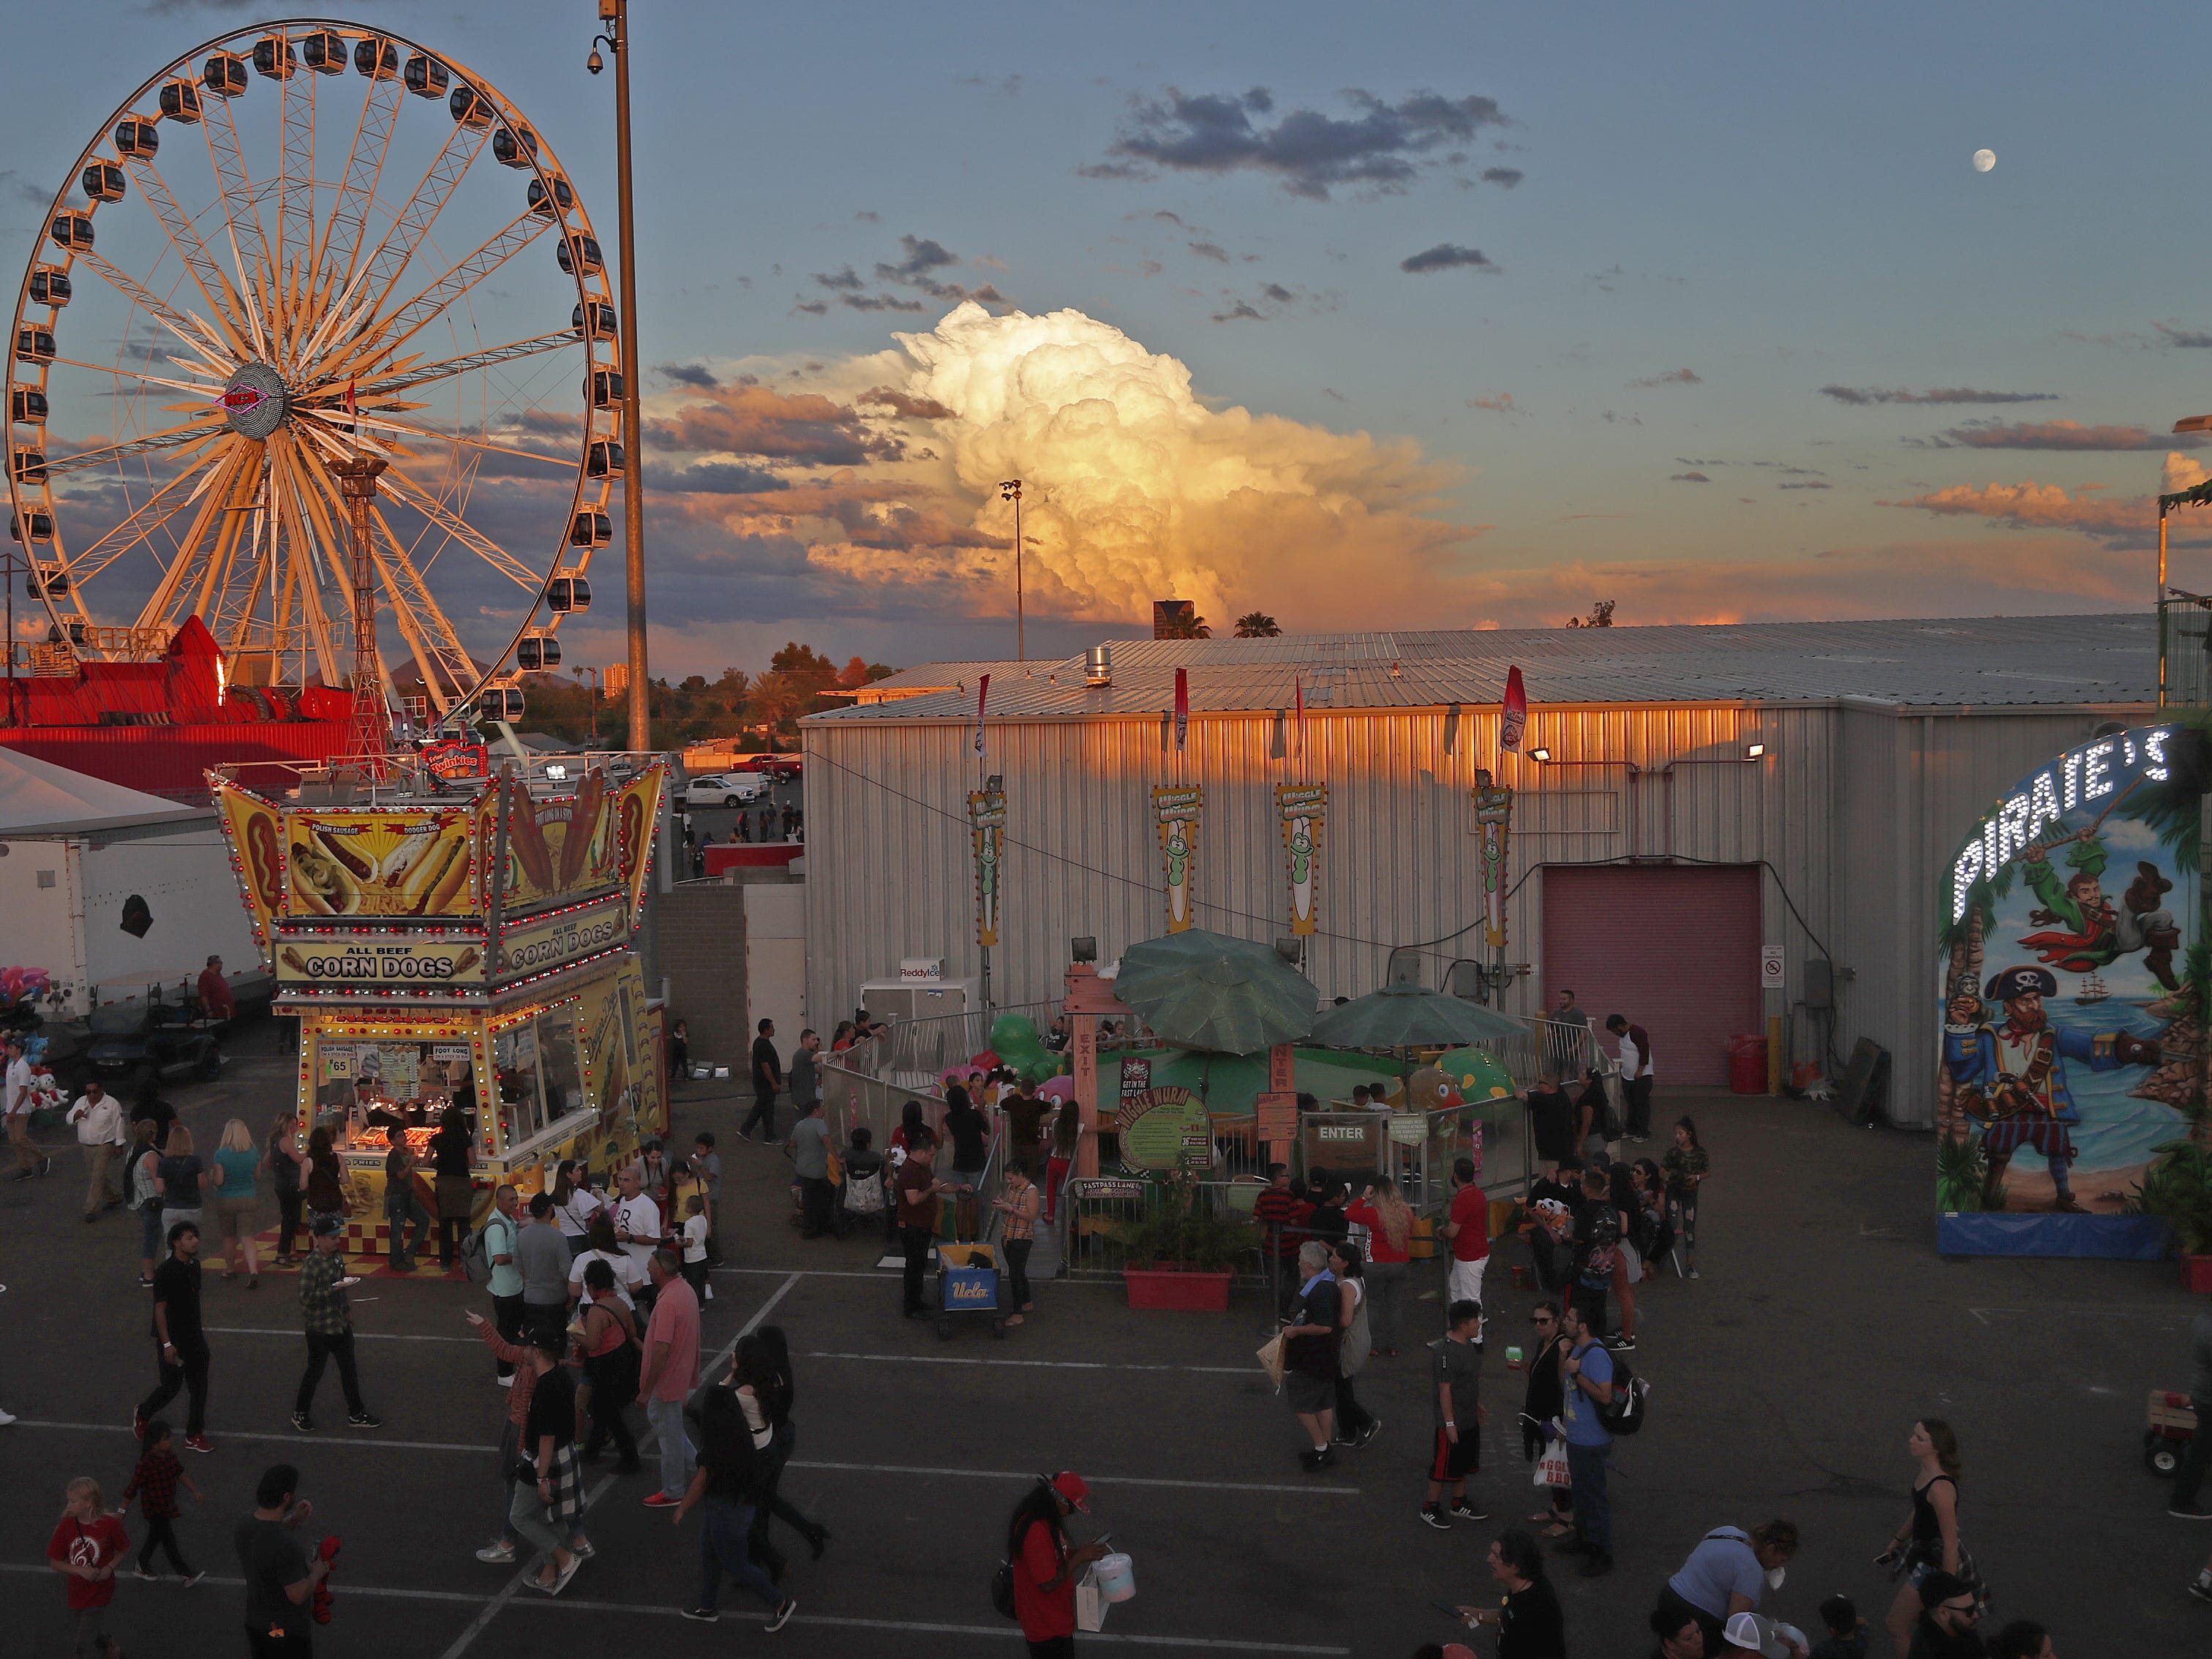 The sun sets at the Arizona State Fair in Phoenix, Ariz. on October 21, 2018.